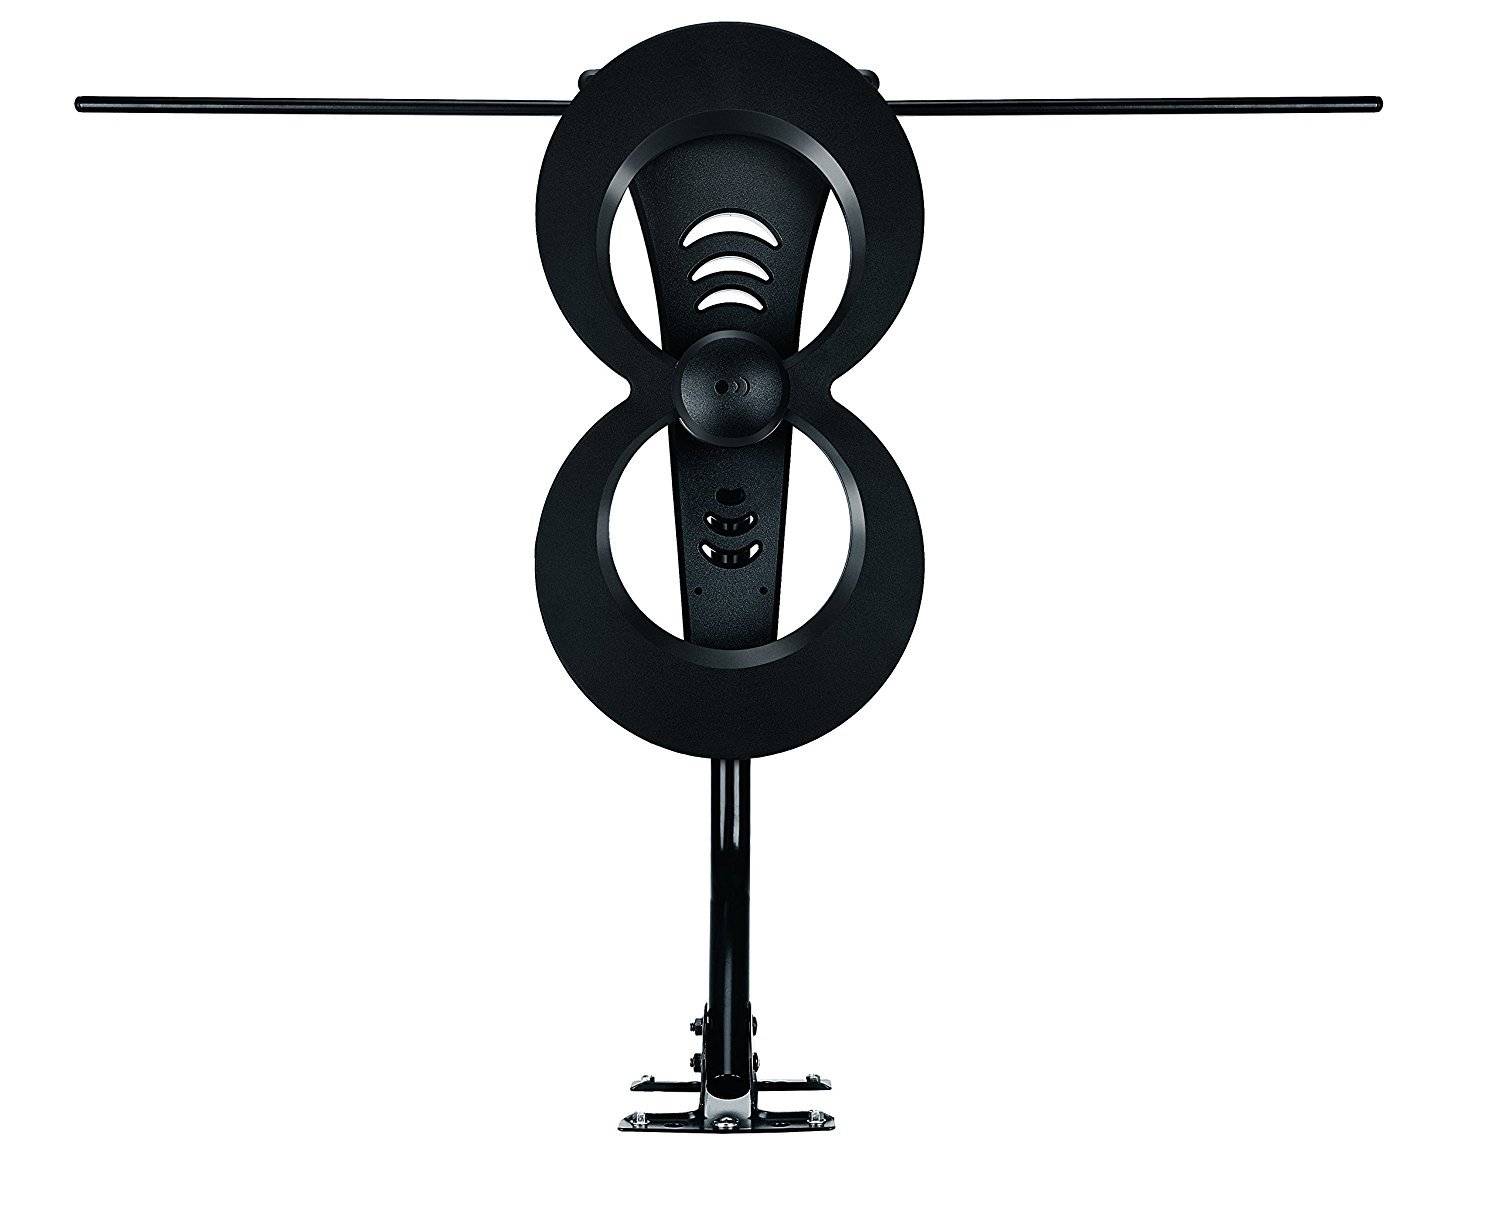 ClearStream 2MAX TV Antenna, 60+ Mile Range, Multi-Directional, Indoor, Attic, Outdoor, 20-inch Mast with Pivoting Base, All-Weather Mounting Hardware, 4K Ready, Black